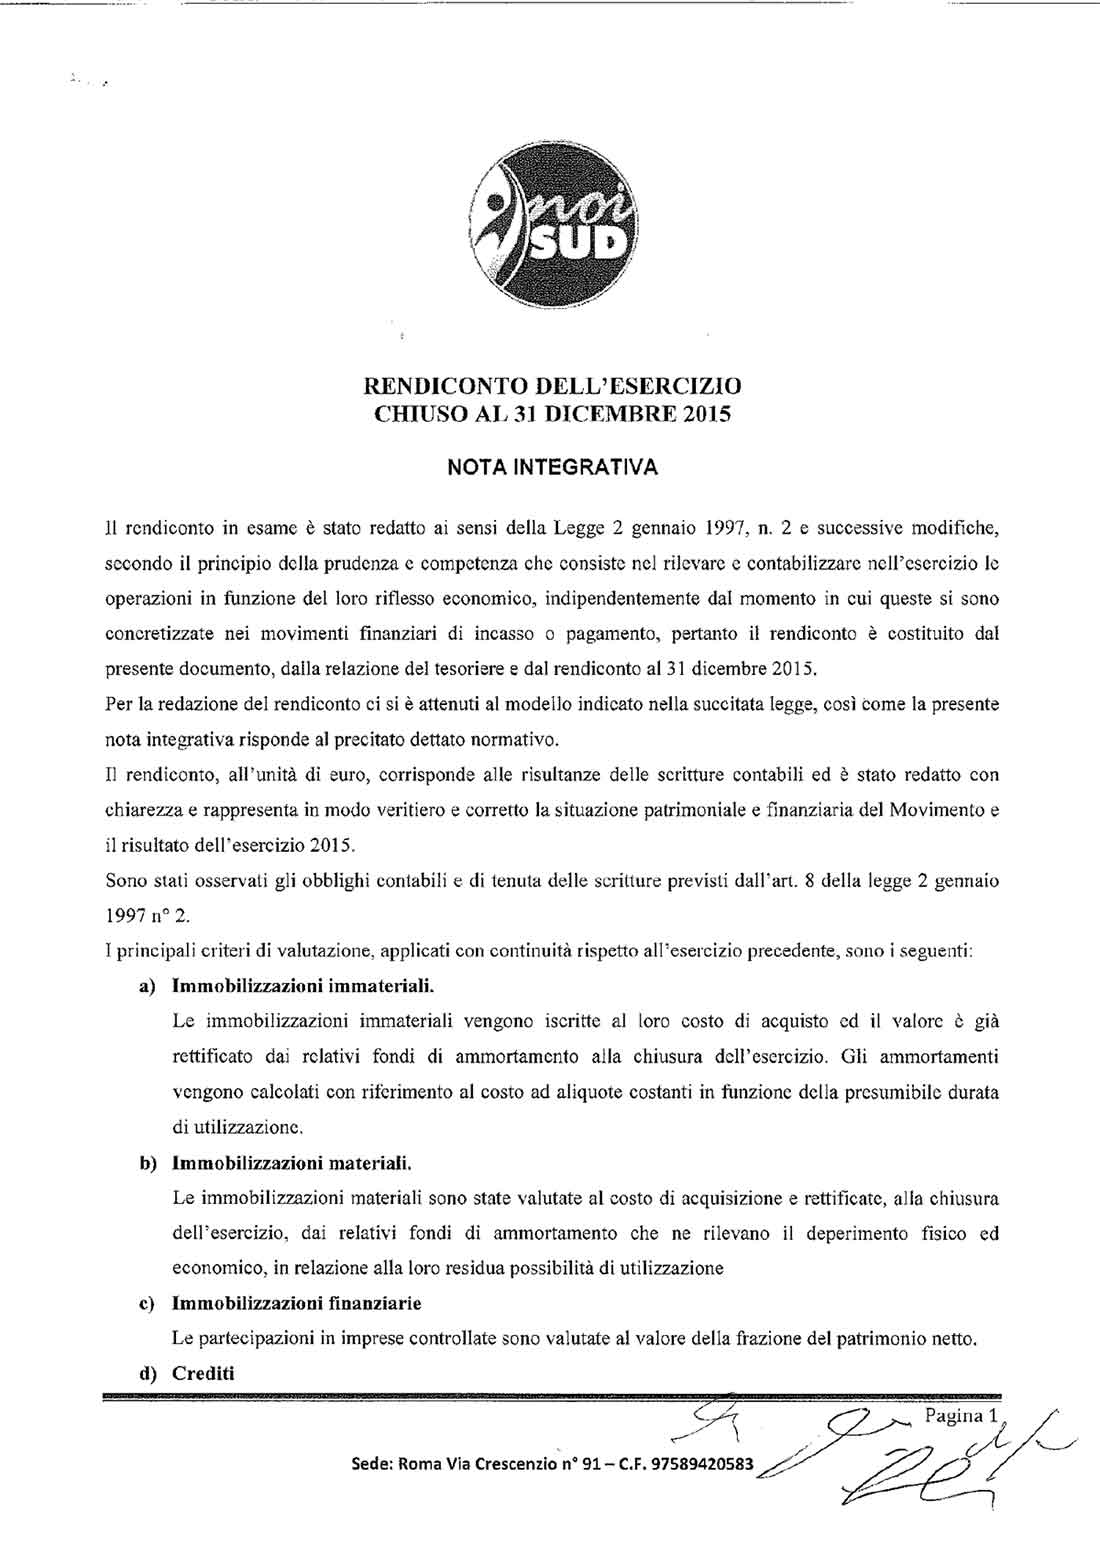 nota-integrativa-rendiconto-2015-1